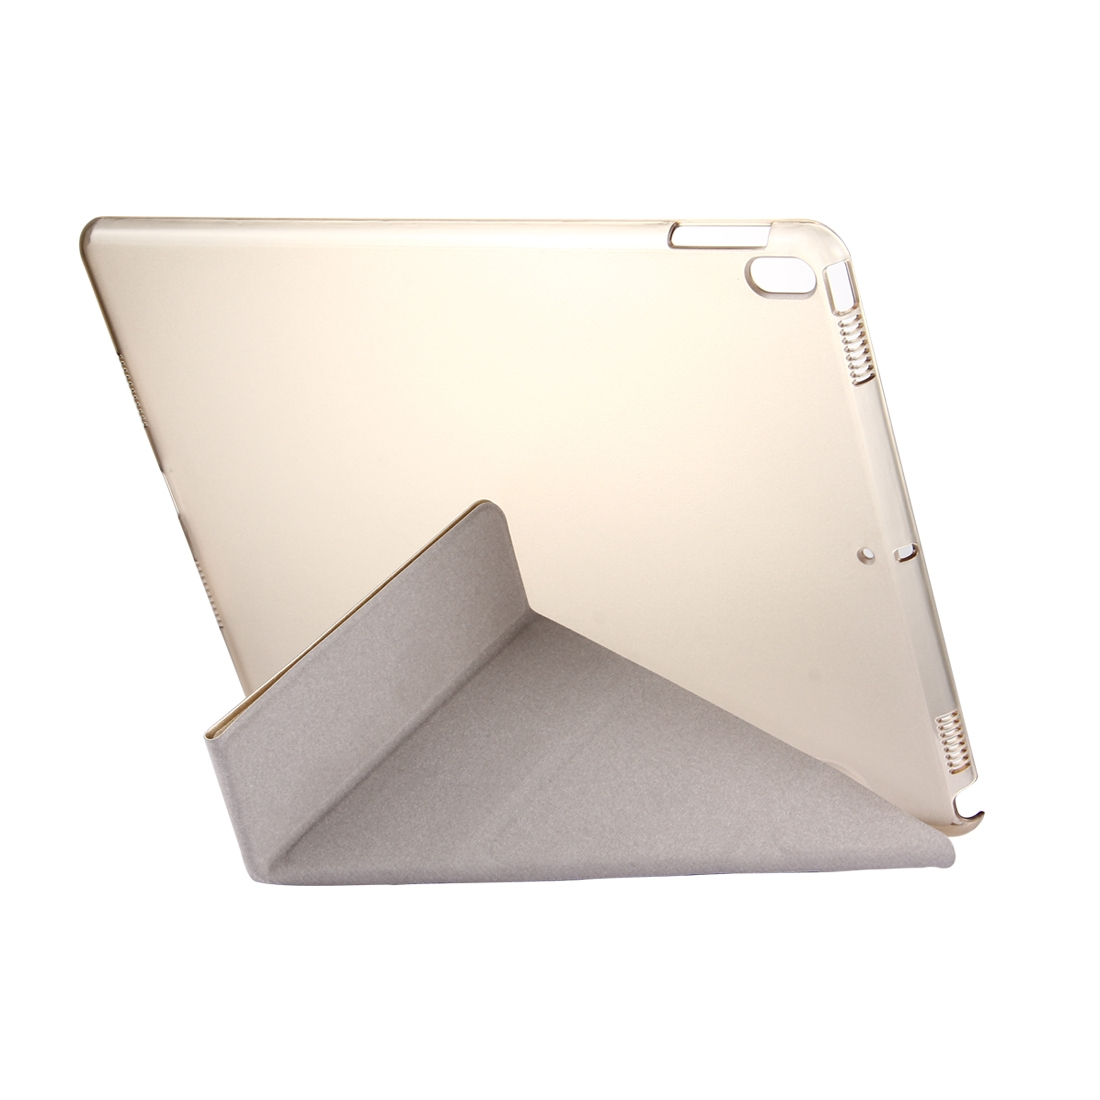 Silk Textured Leather iPad Air 3 Case (10.5 Inch) with Quad-Fold Holder, Auto Sleep (Champagne Gold)